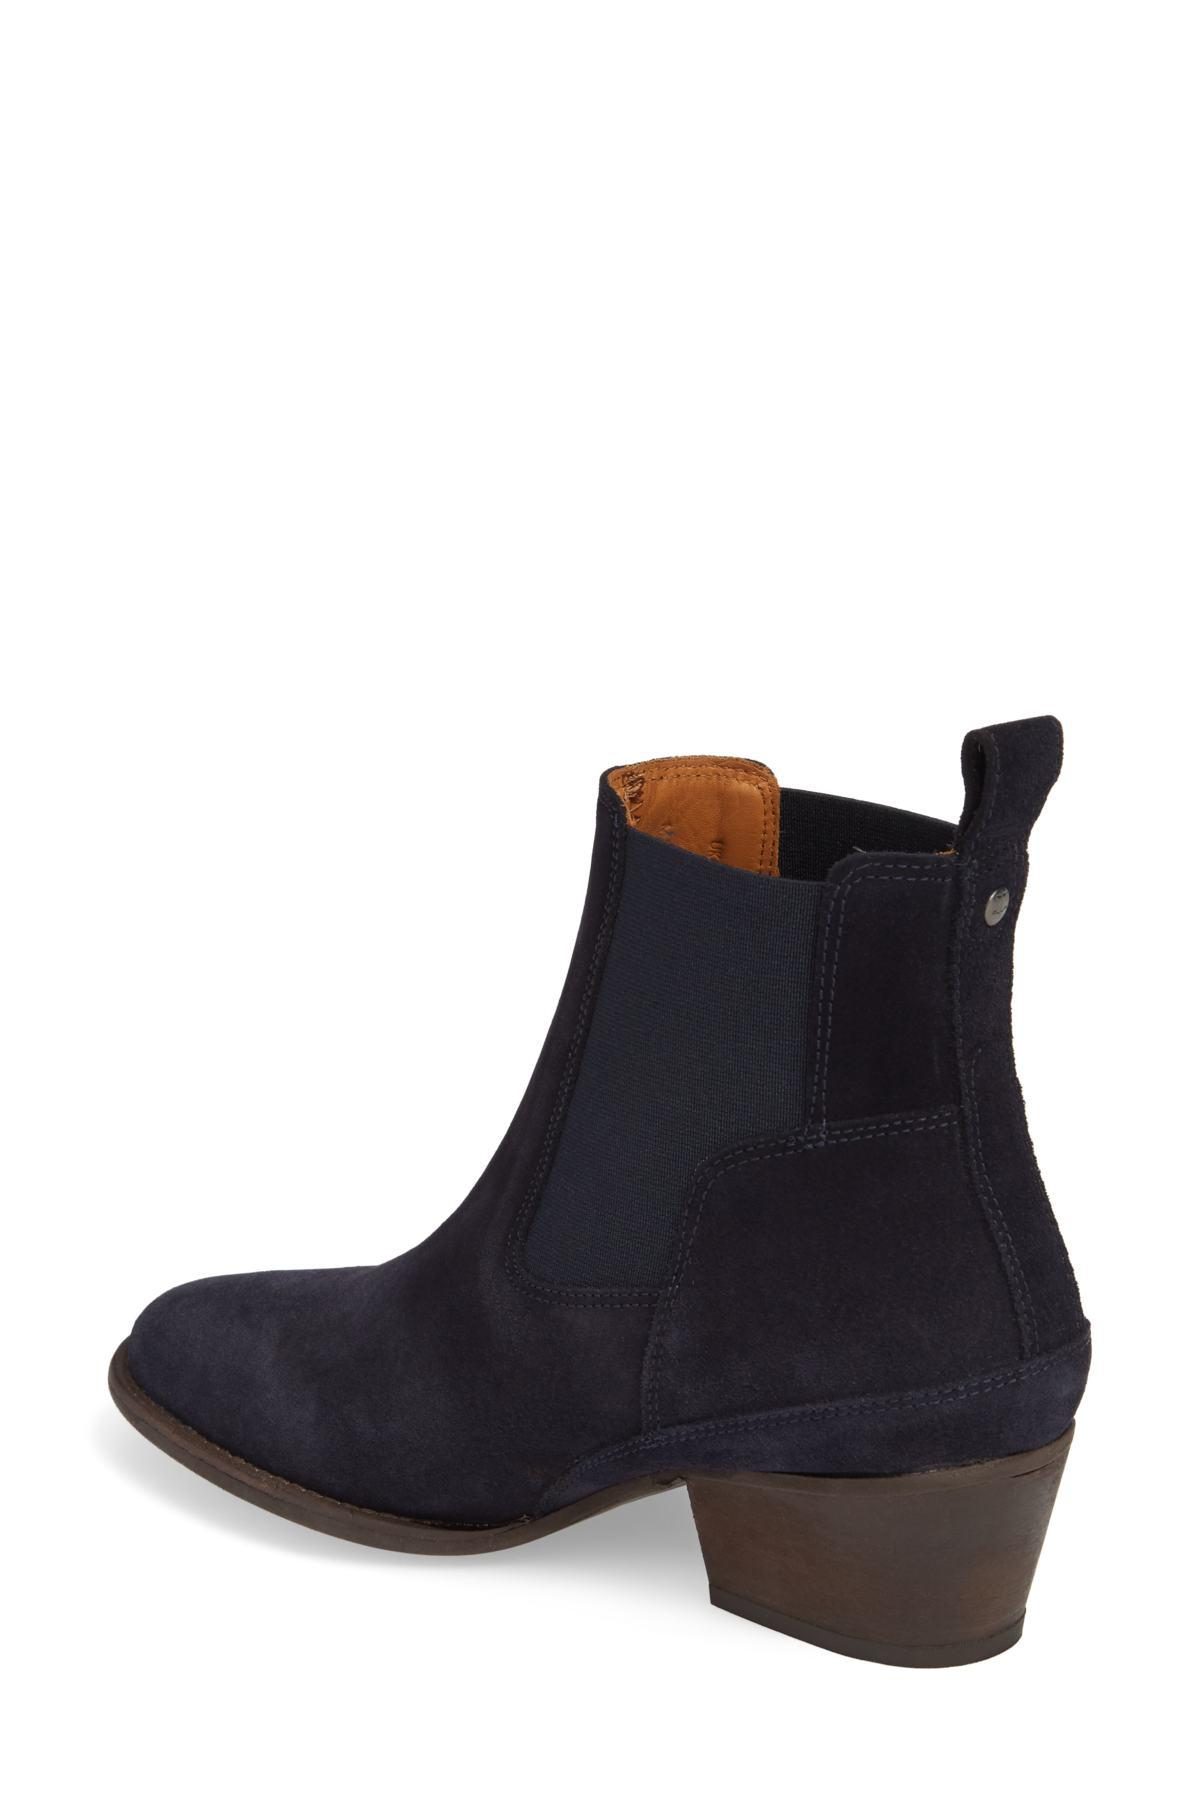 4e5bde26f922 ... Original Refined Water Resistant Chelsea Boot - Lyst. View fullscreen